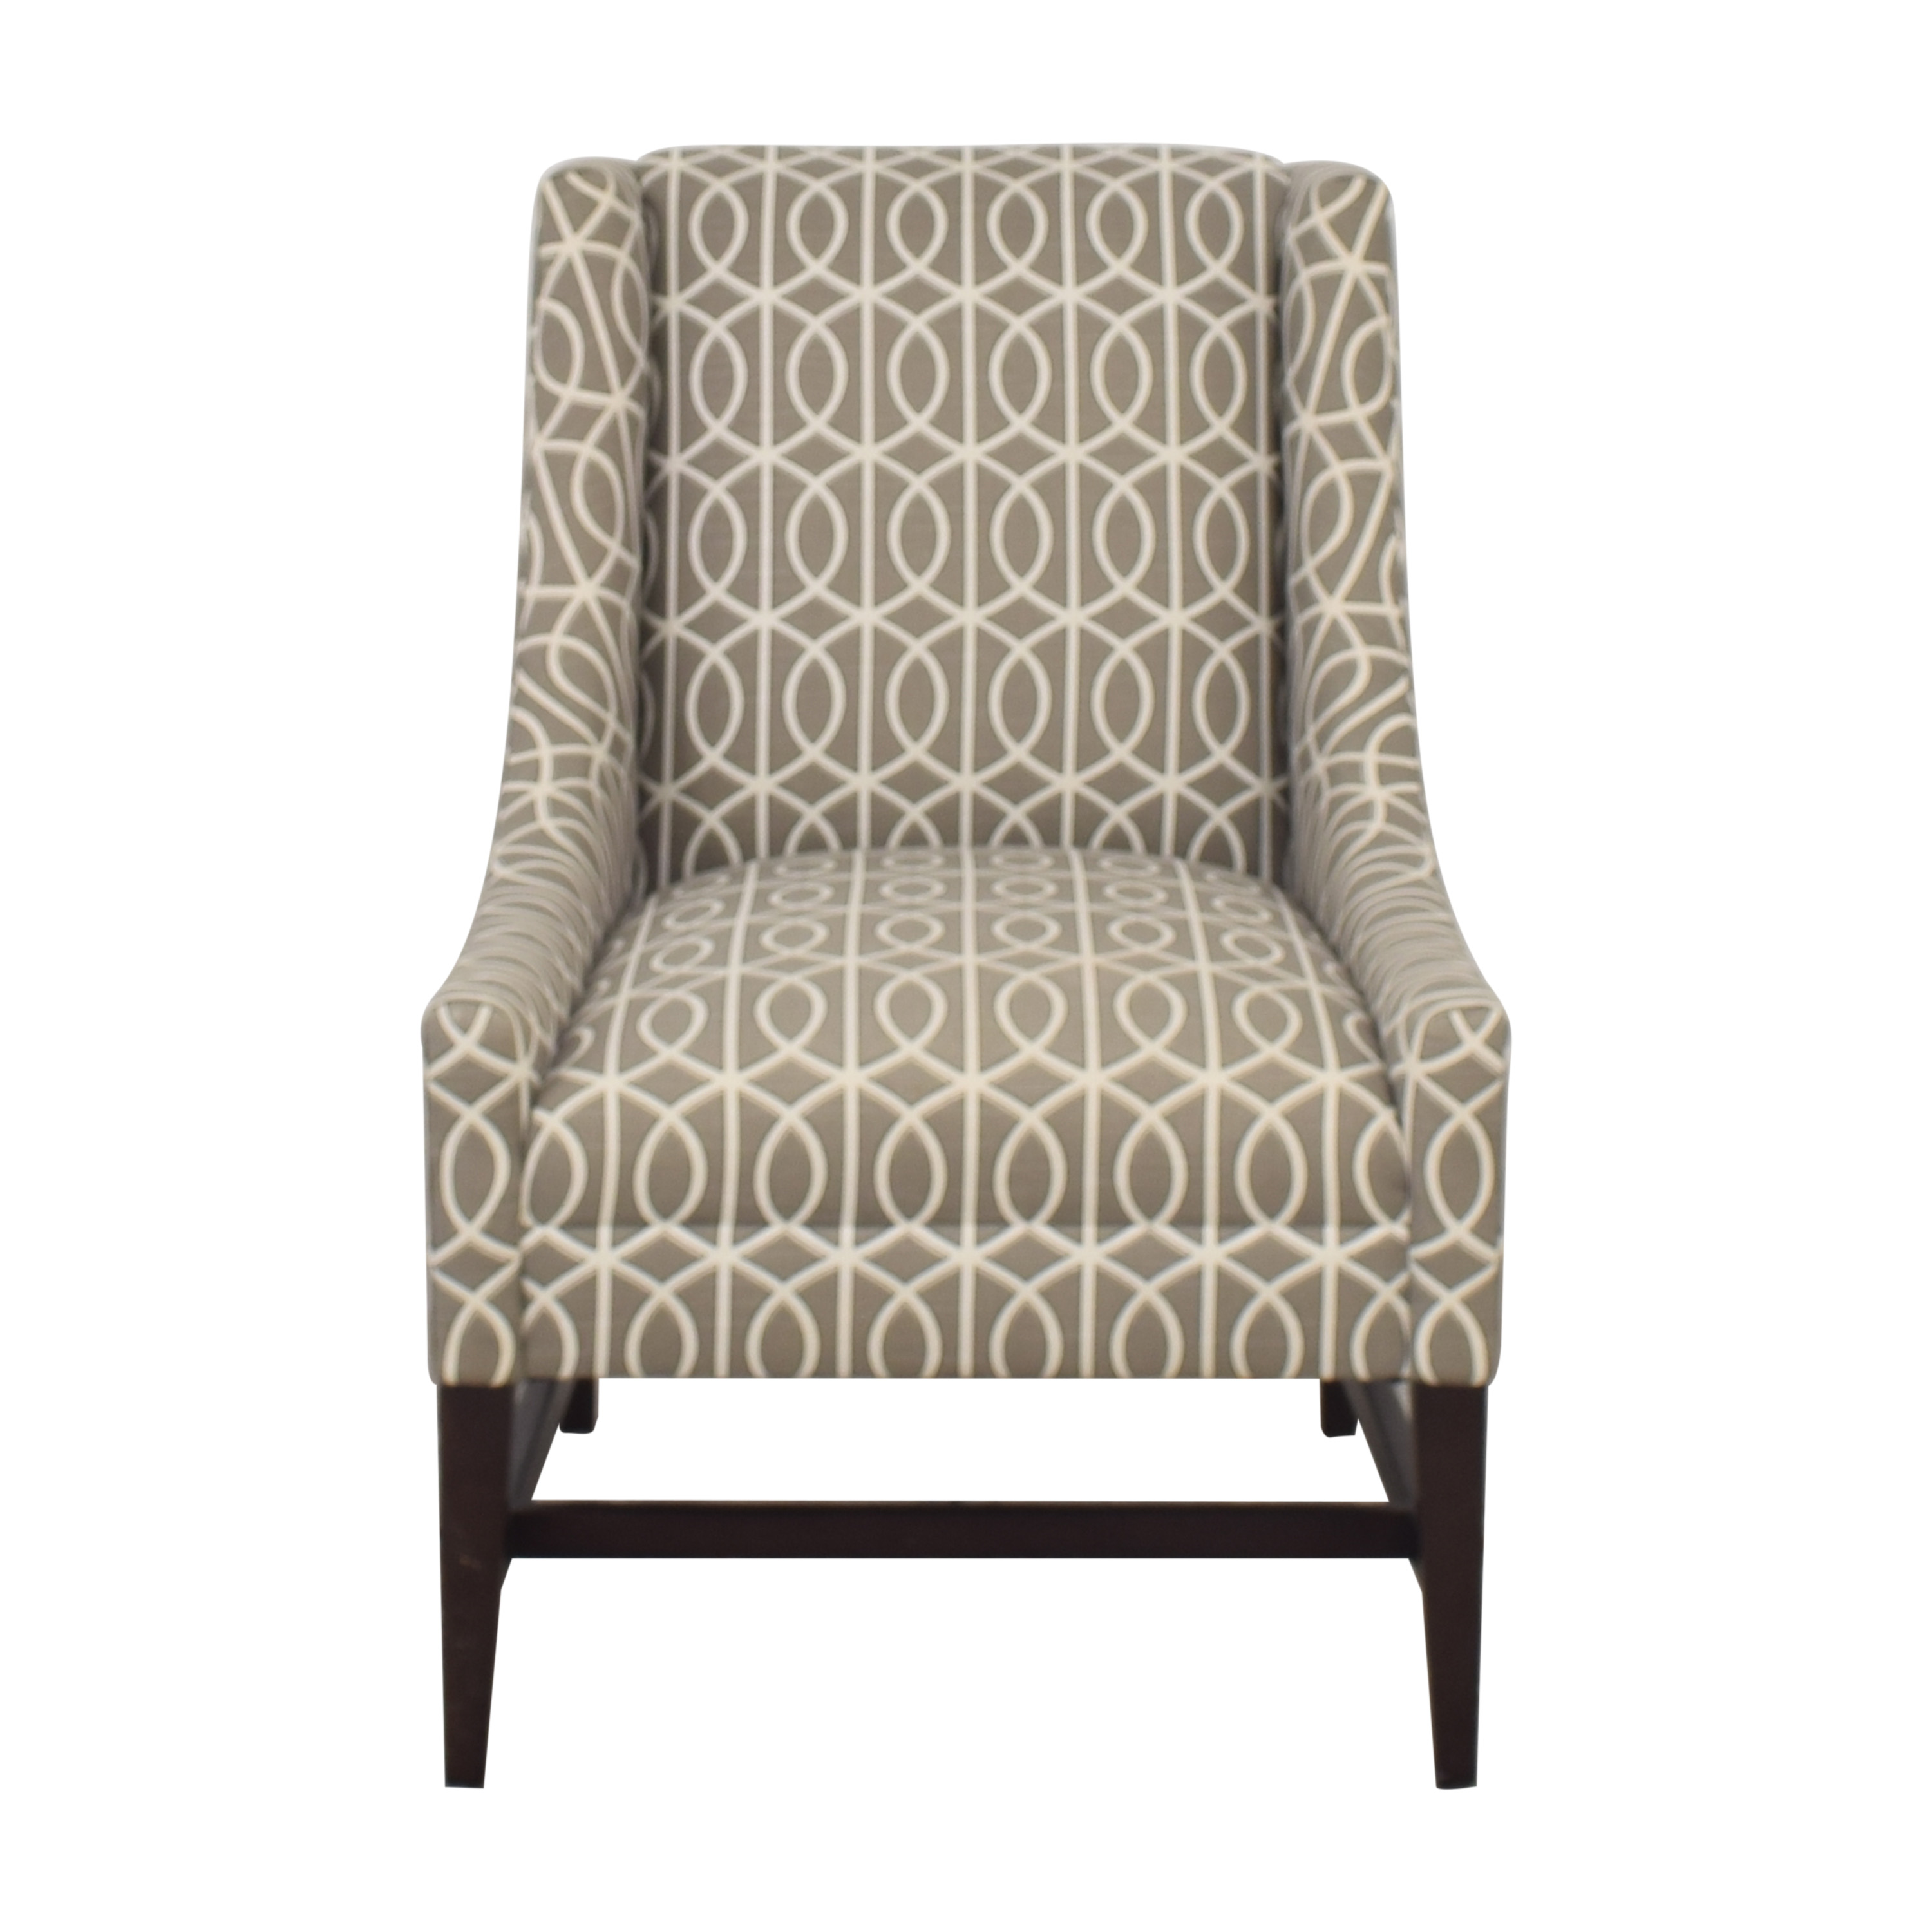 buy Crate & Barrel Chloe Armchair Lounge Accent Chair Crate & Barrel Chairs